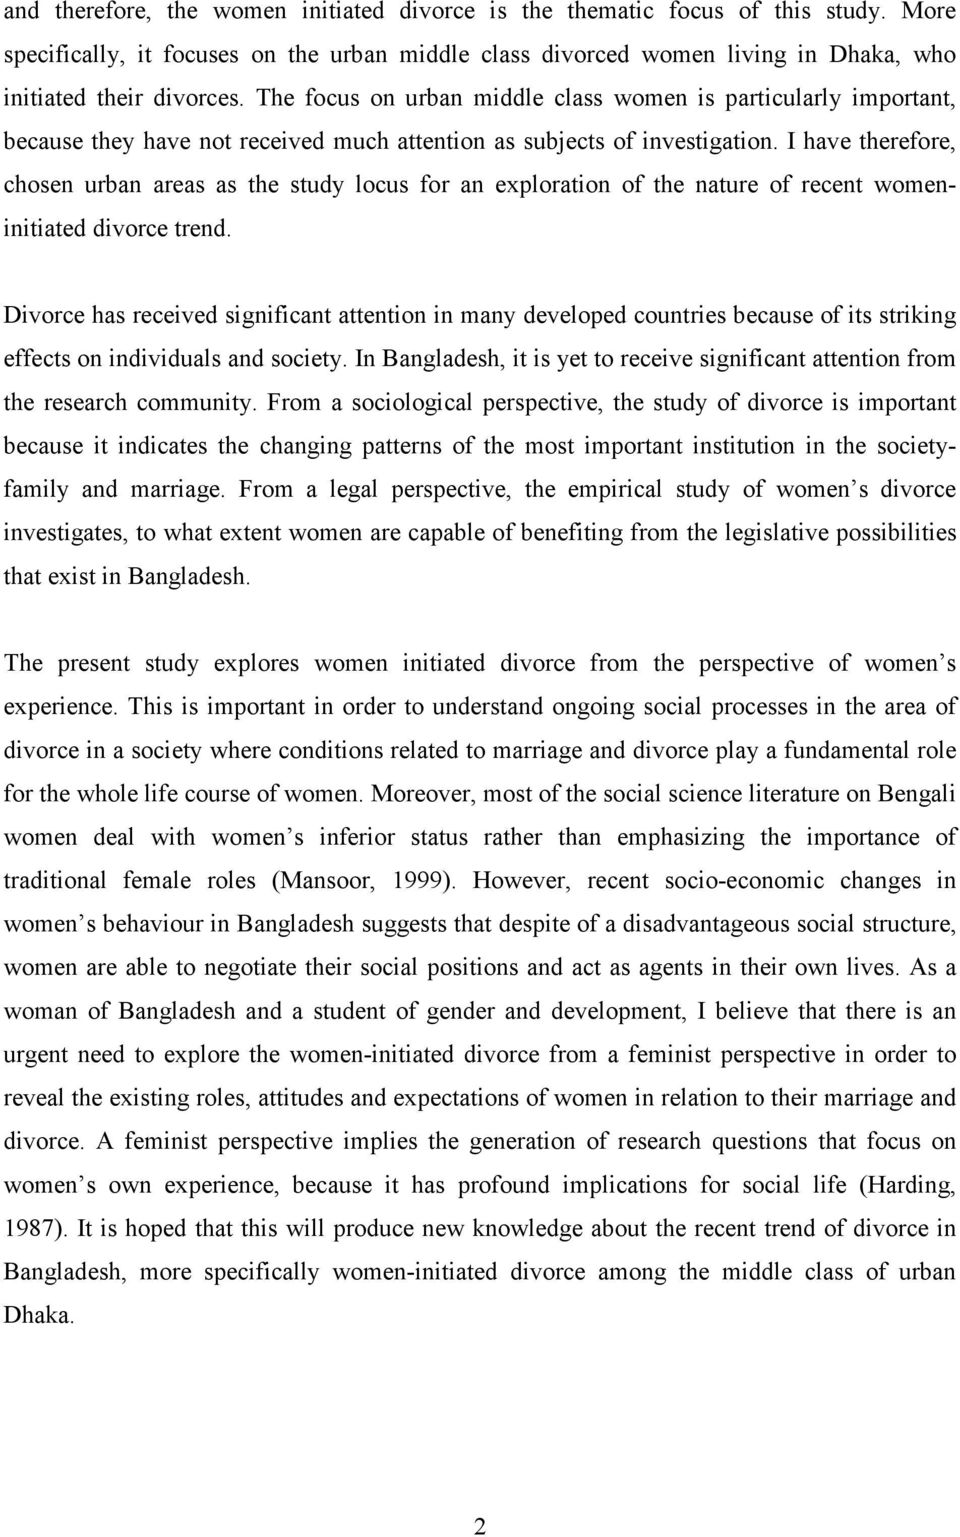 thesis on gender and development